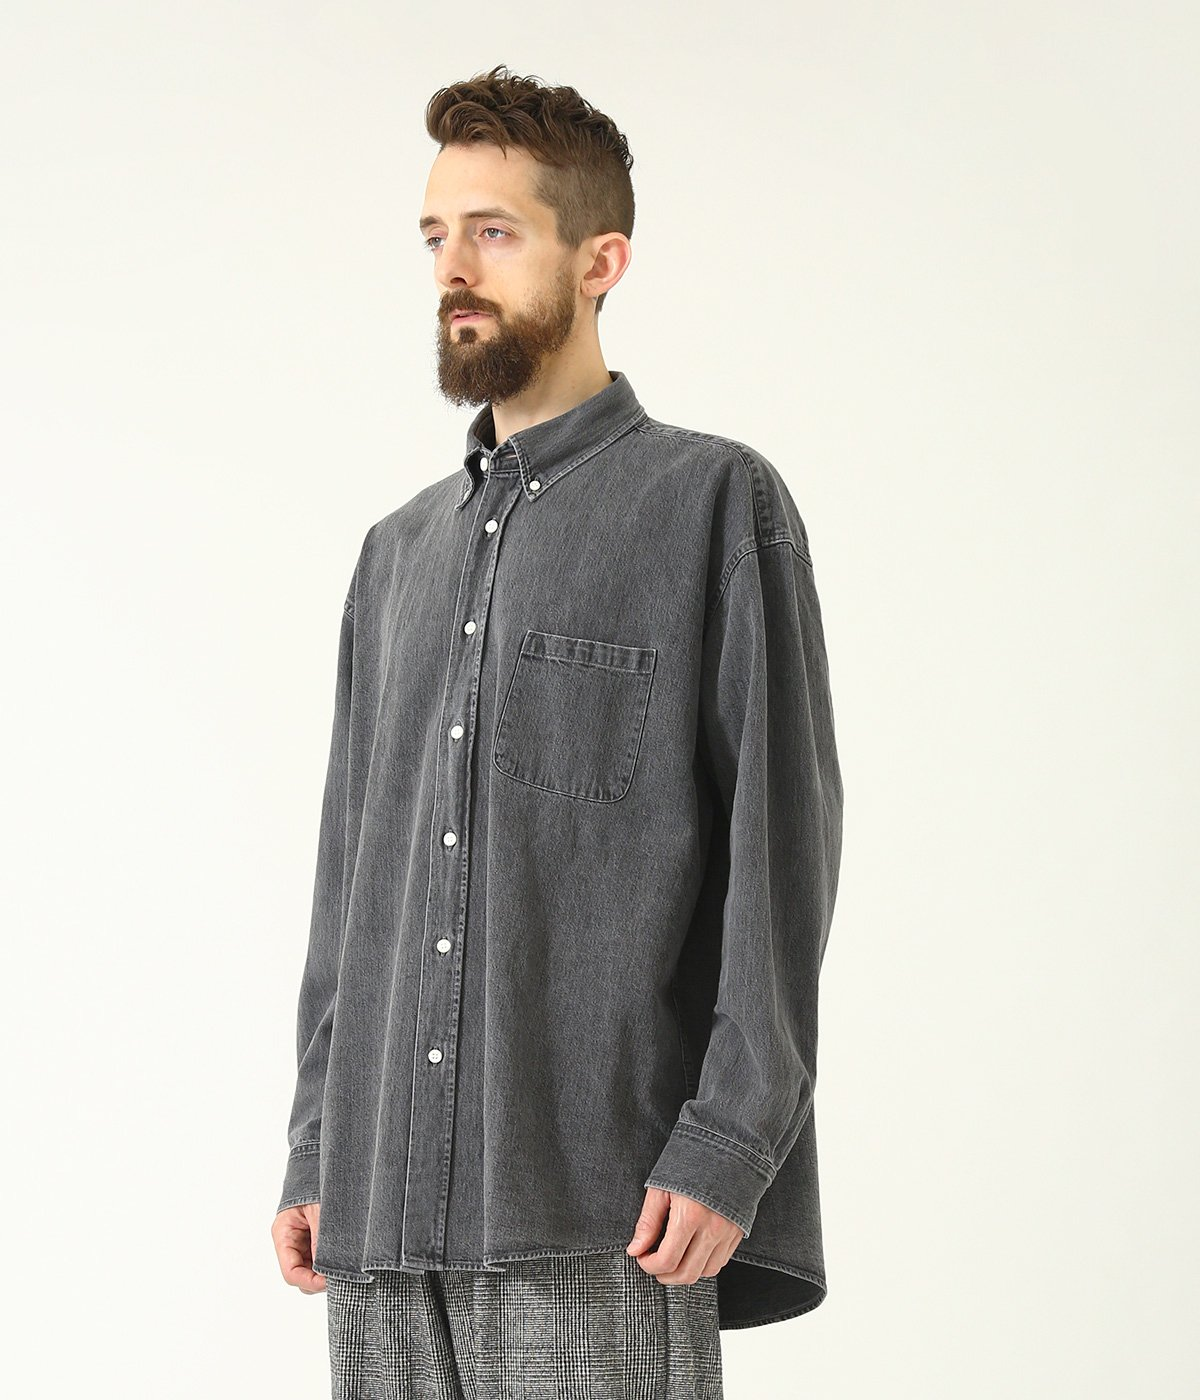 10oz. DENIM B.D. BIG SHIRT